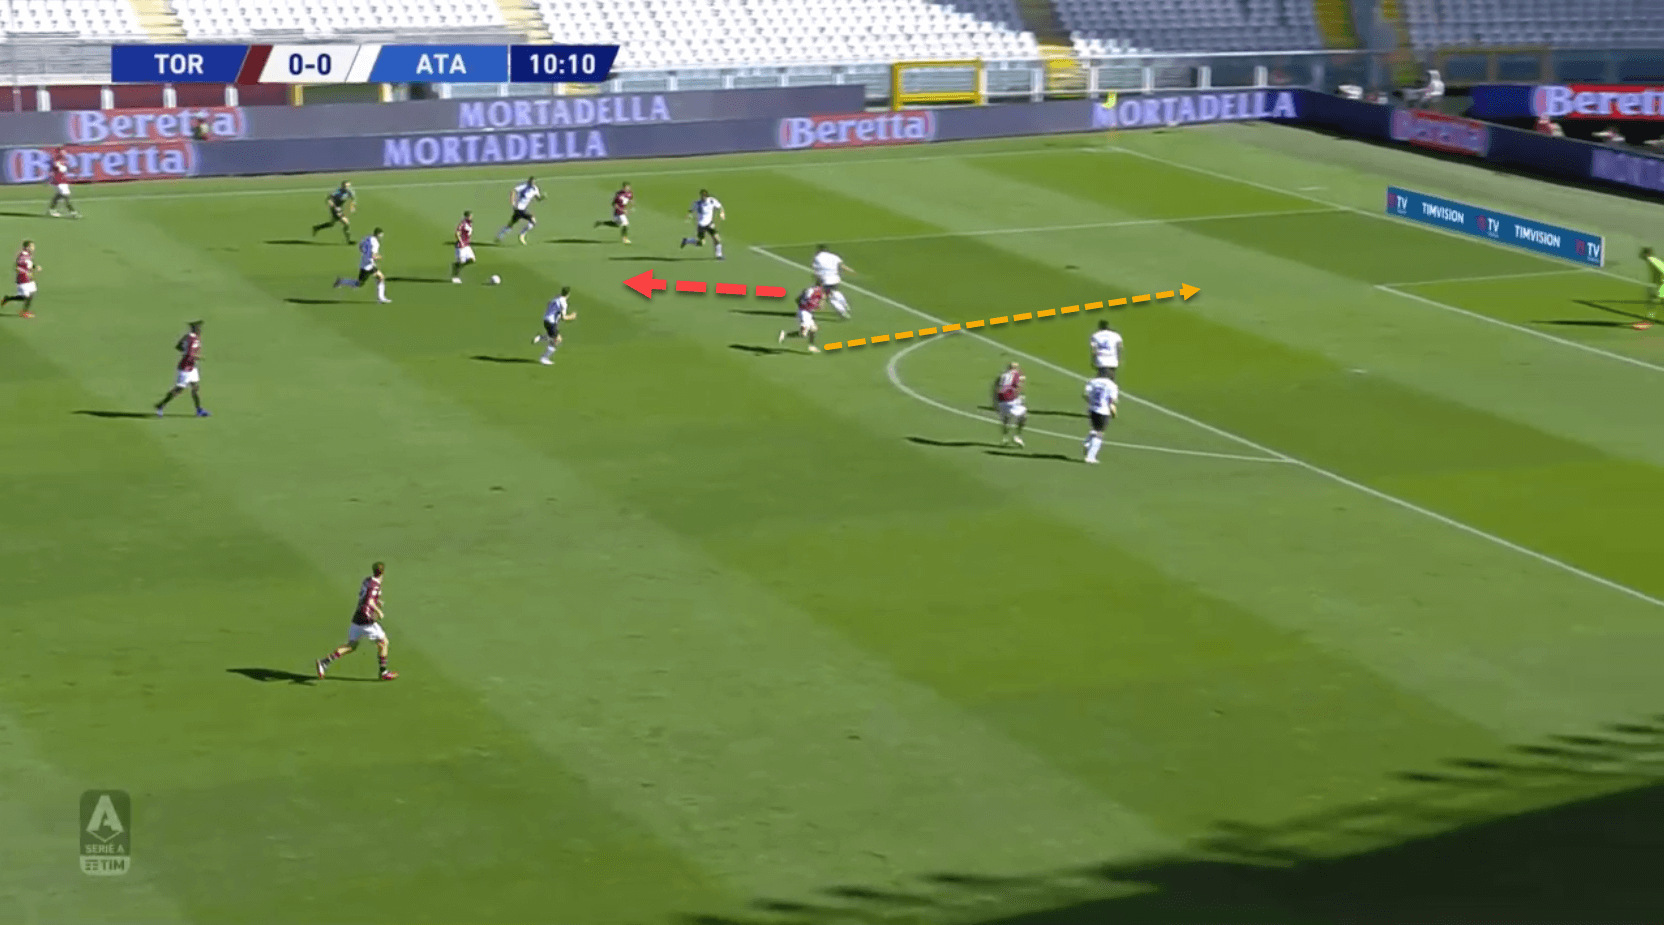 Serie A 2020/21: Torino vs Atalanta - tactical analysis tactics